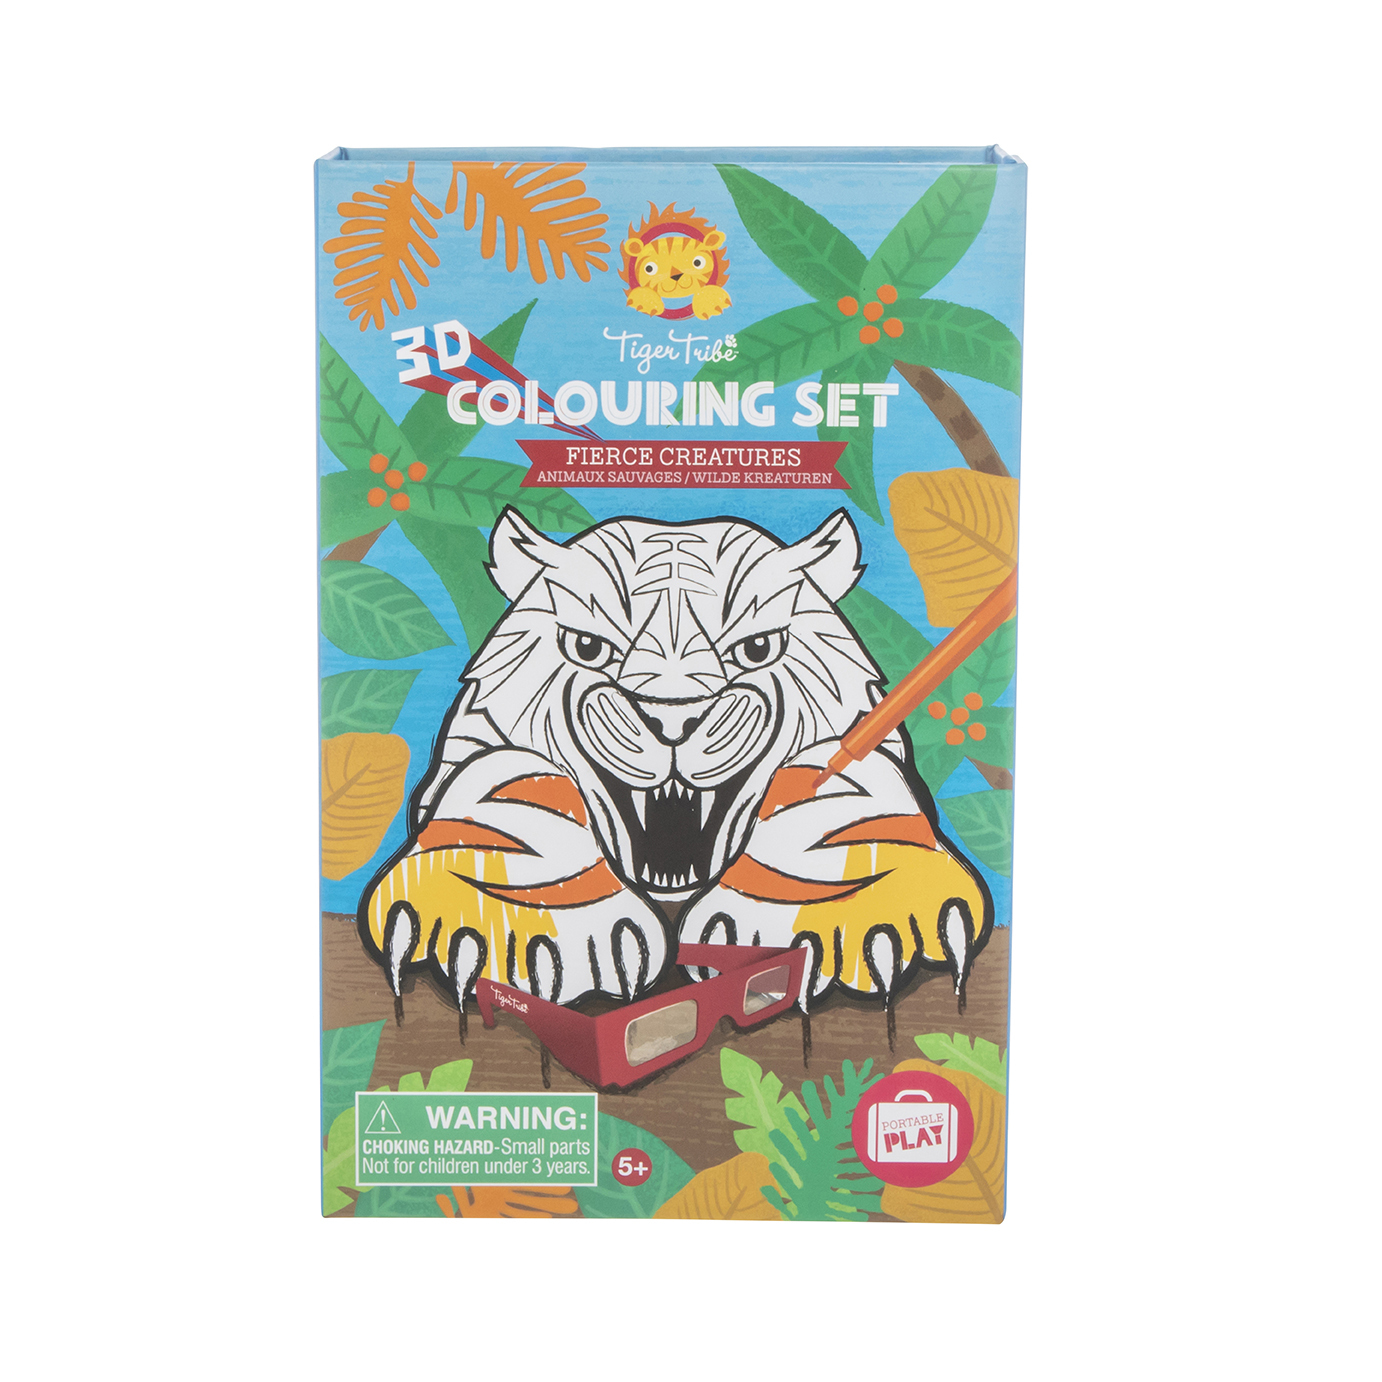 Tiger Tribe 3D Colouring Set - Fierce Creatures